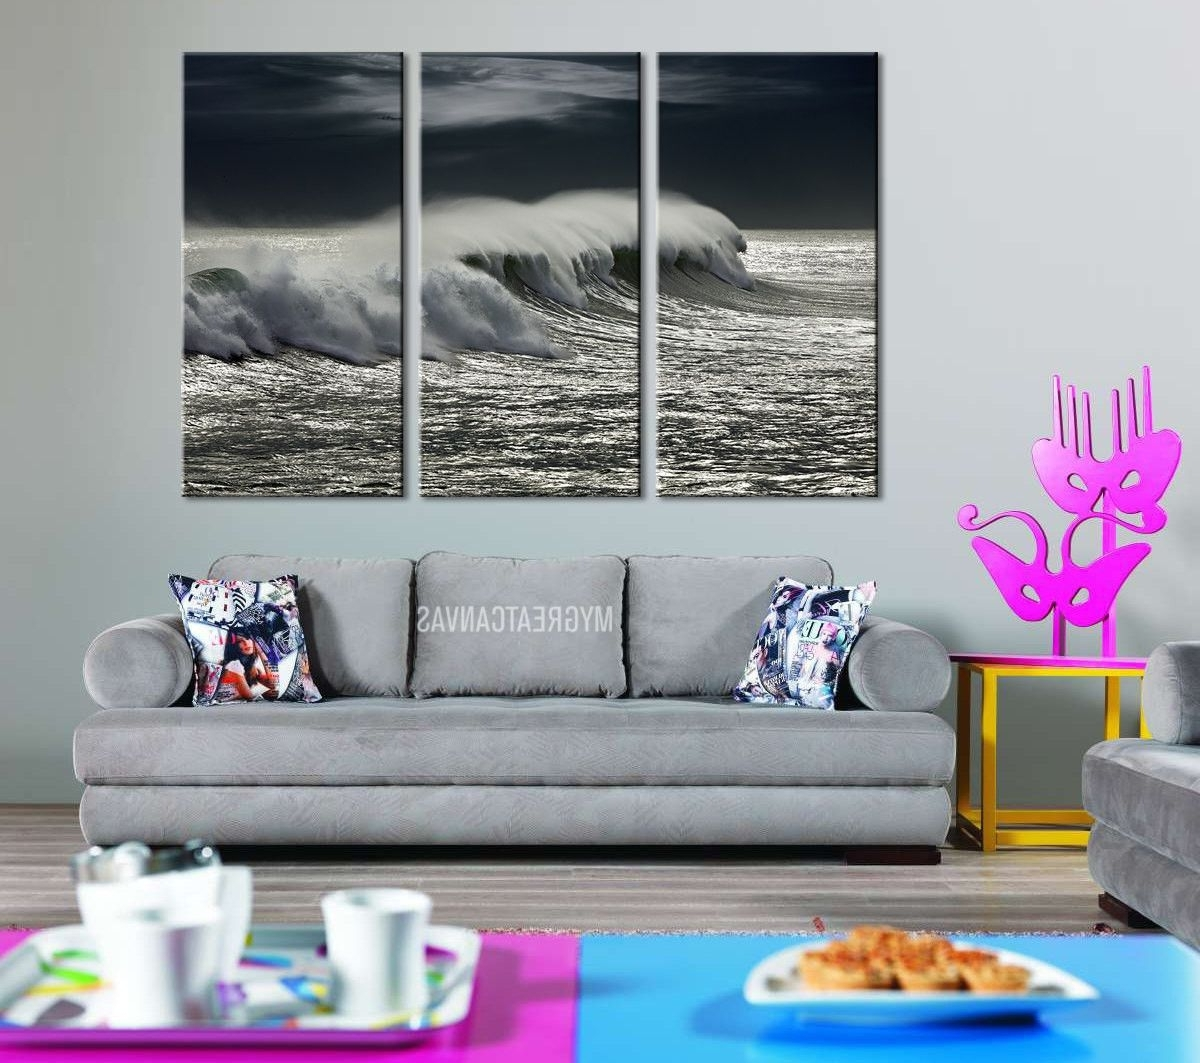 Large Wall Art Giclee 3 Panel Canvas Print – Black And White Ocean Within Well Liked Ocean Canvas Wall Art (View 15 of 15)